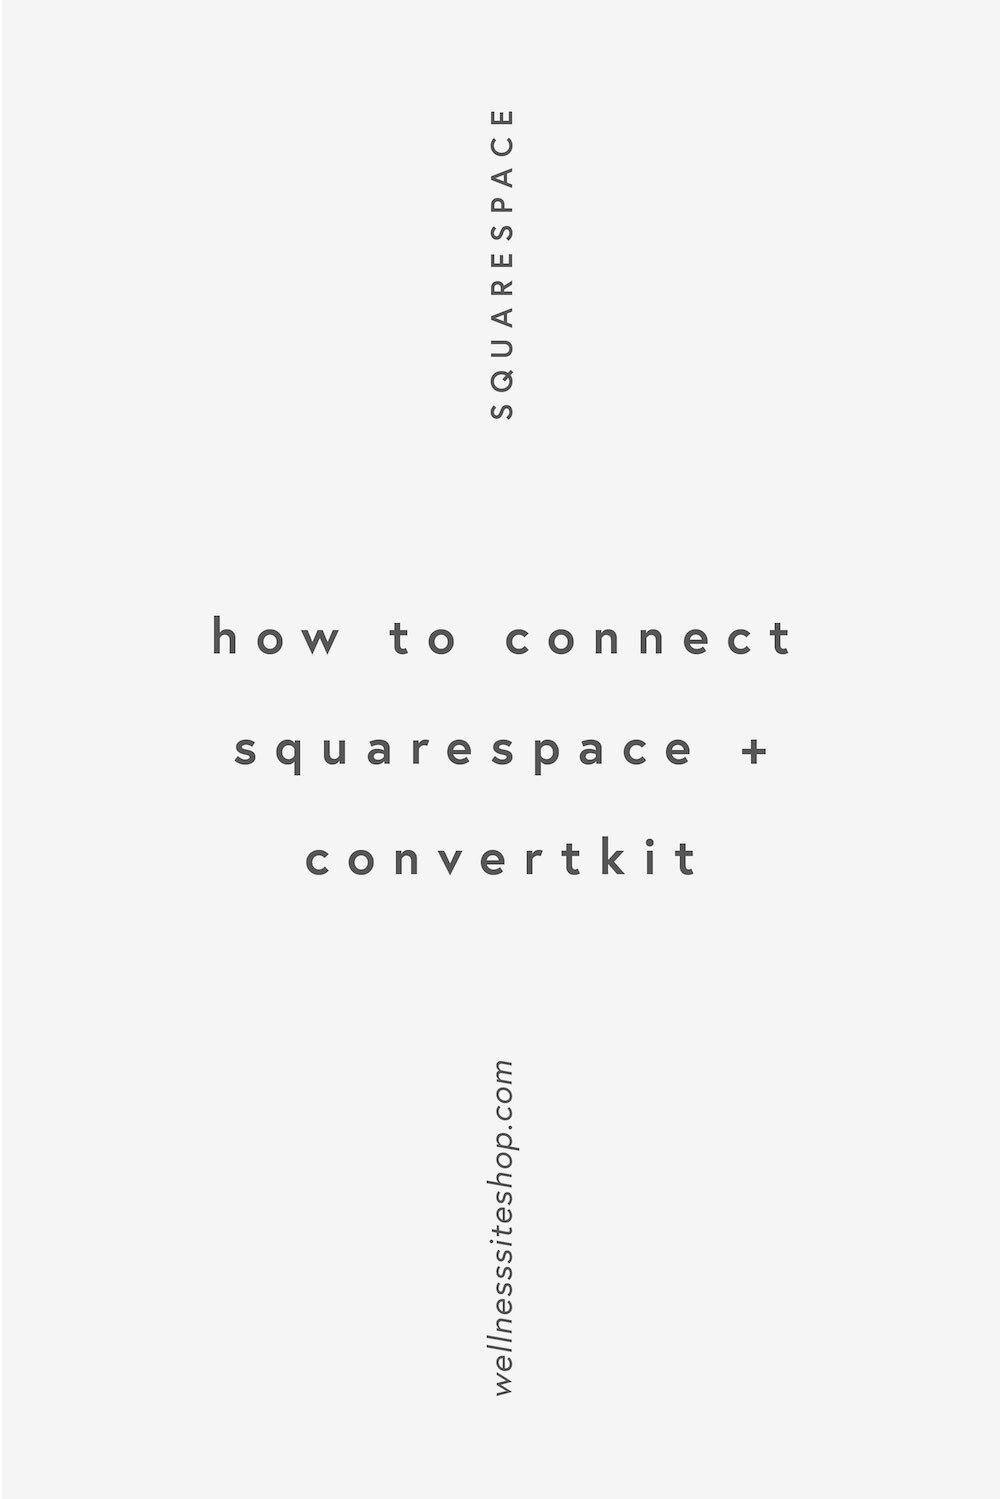 How to connect squarespace and convertkit*.jpg